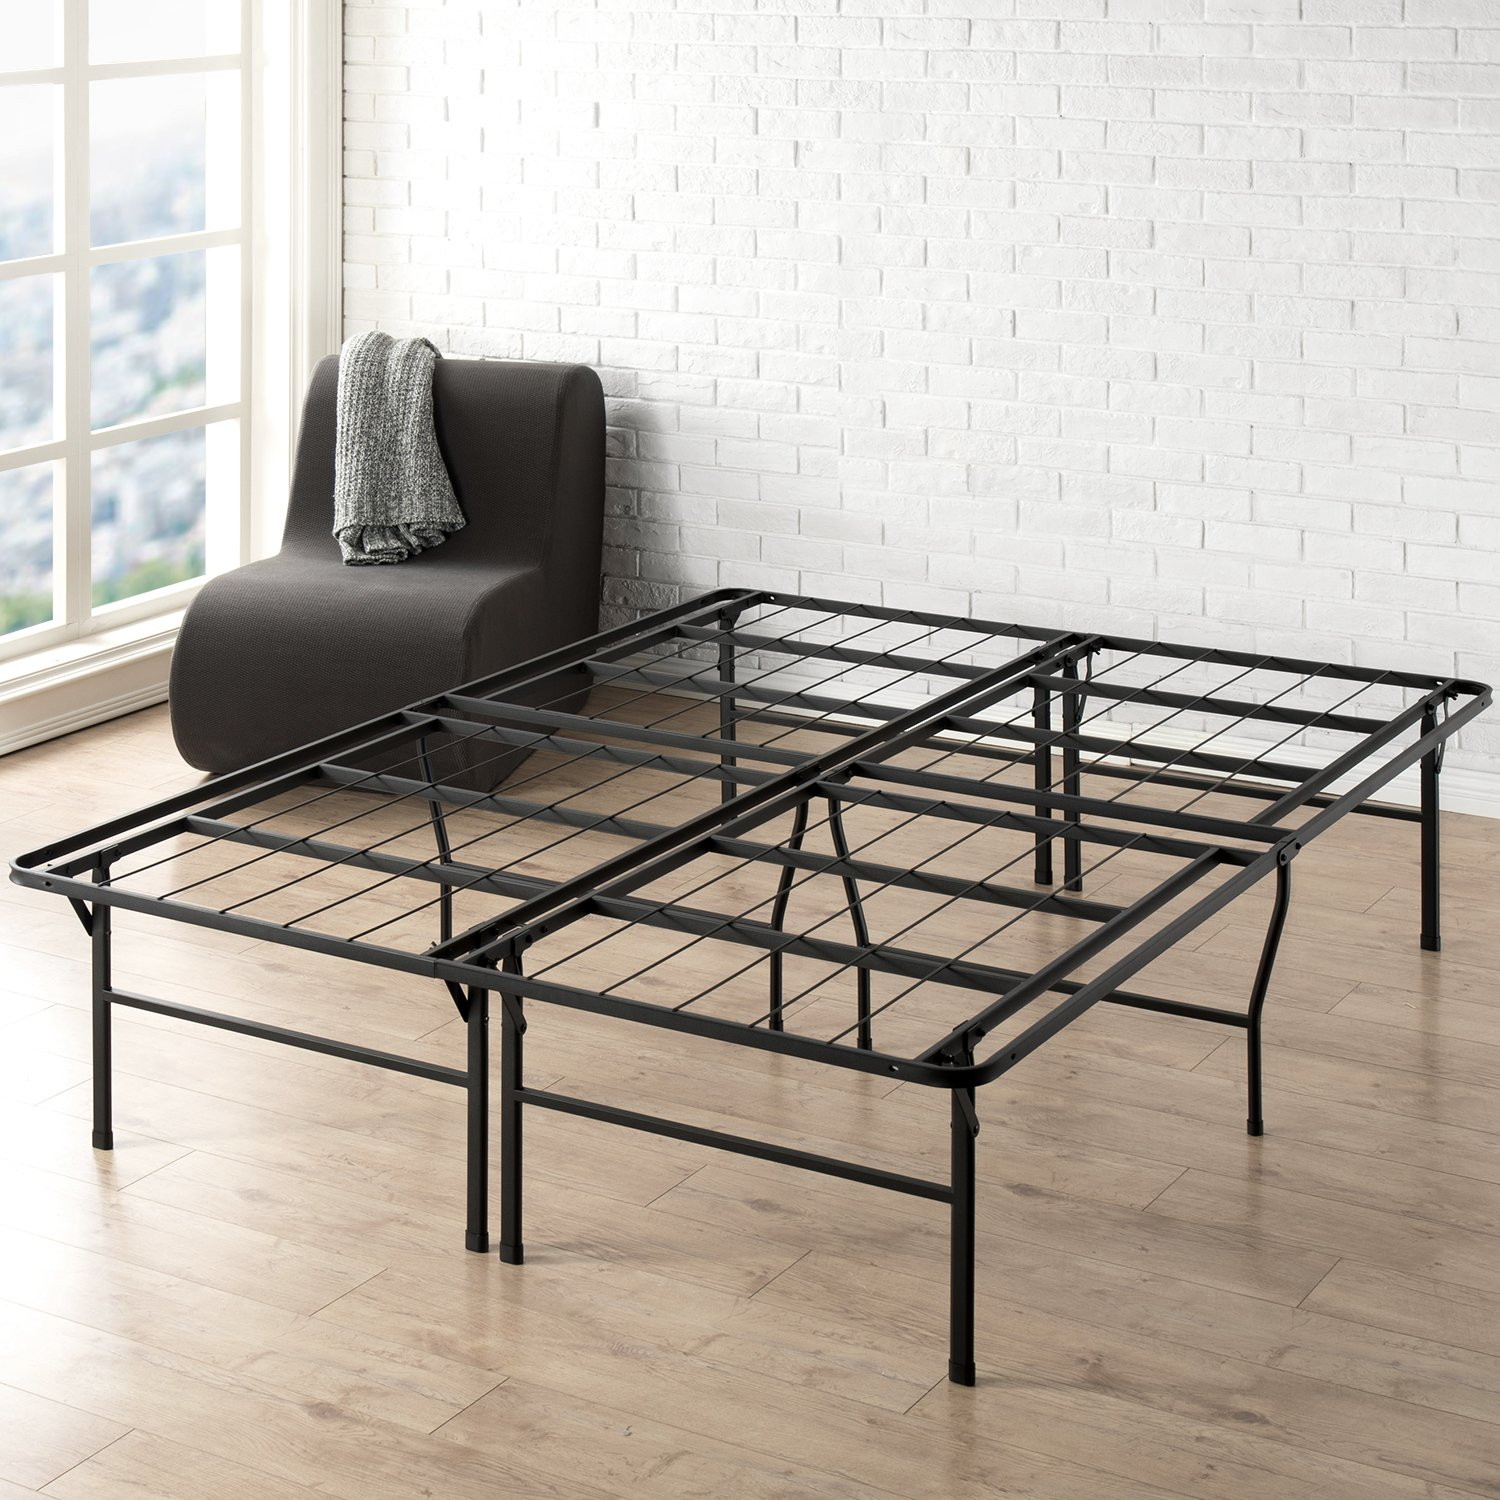 Best Price Mattress Queen Bed Frame - 18 Inch Metal Platform Beds w/Heavy Duty Steel Slat Mattress Foundation (No Box Spring Needed), Black by Best Price Mattress